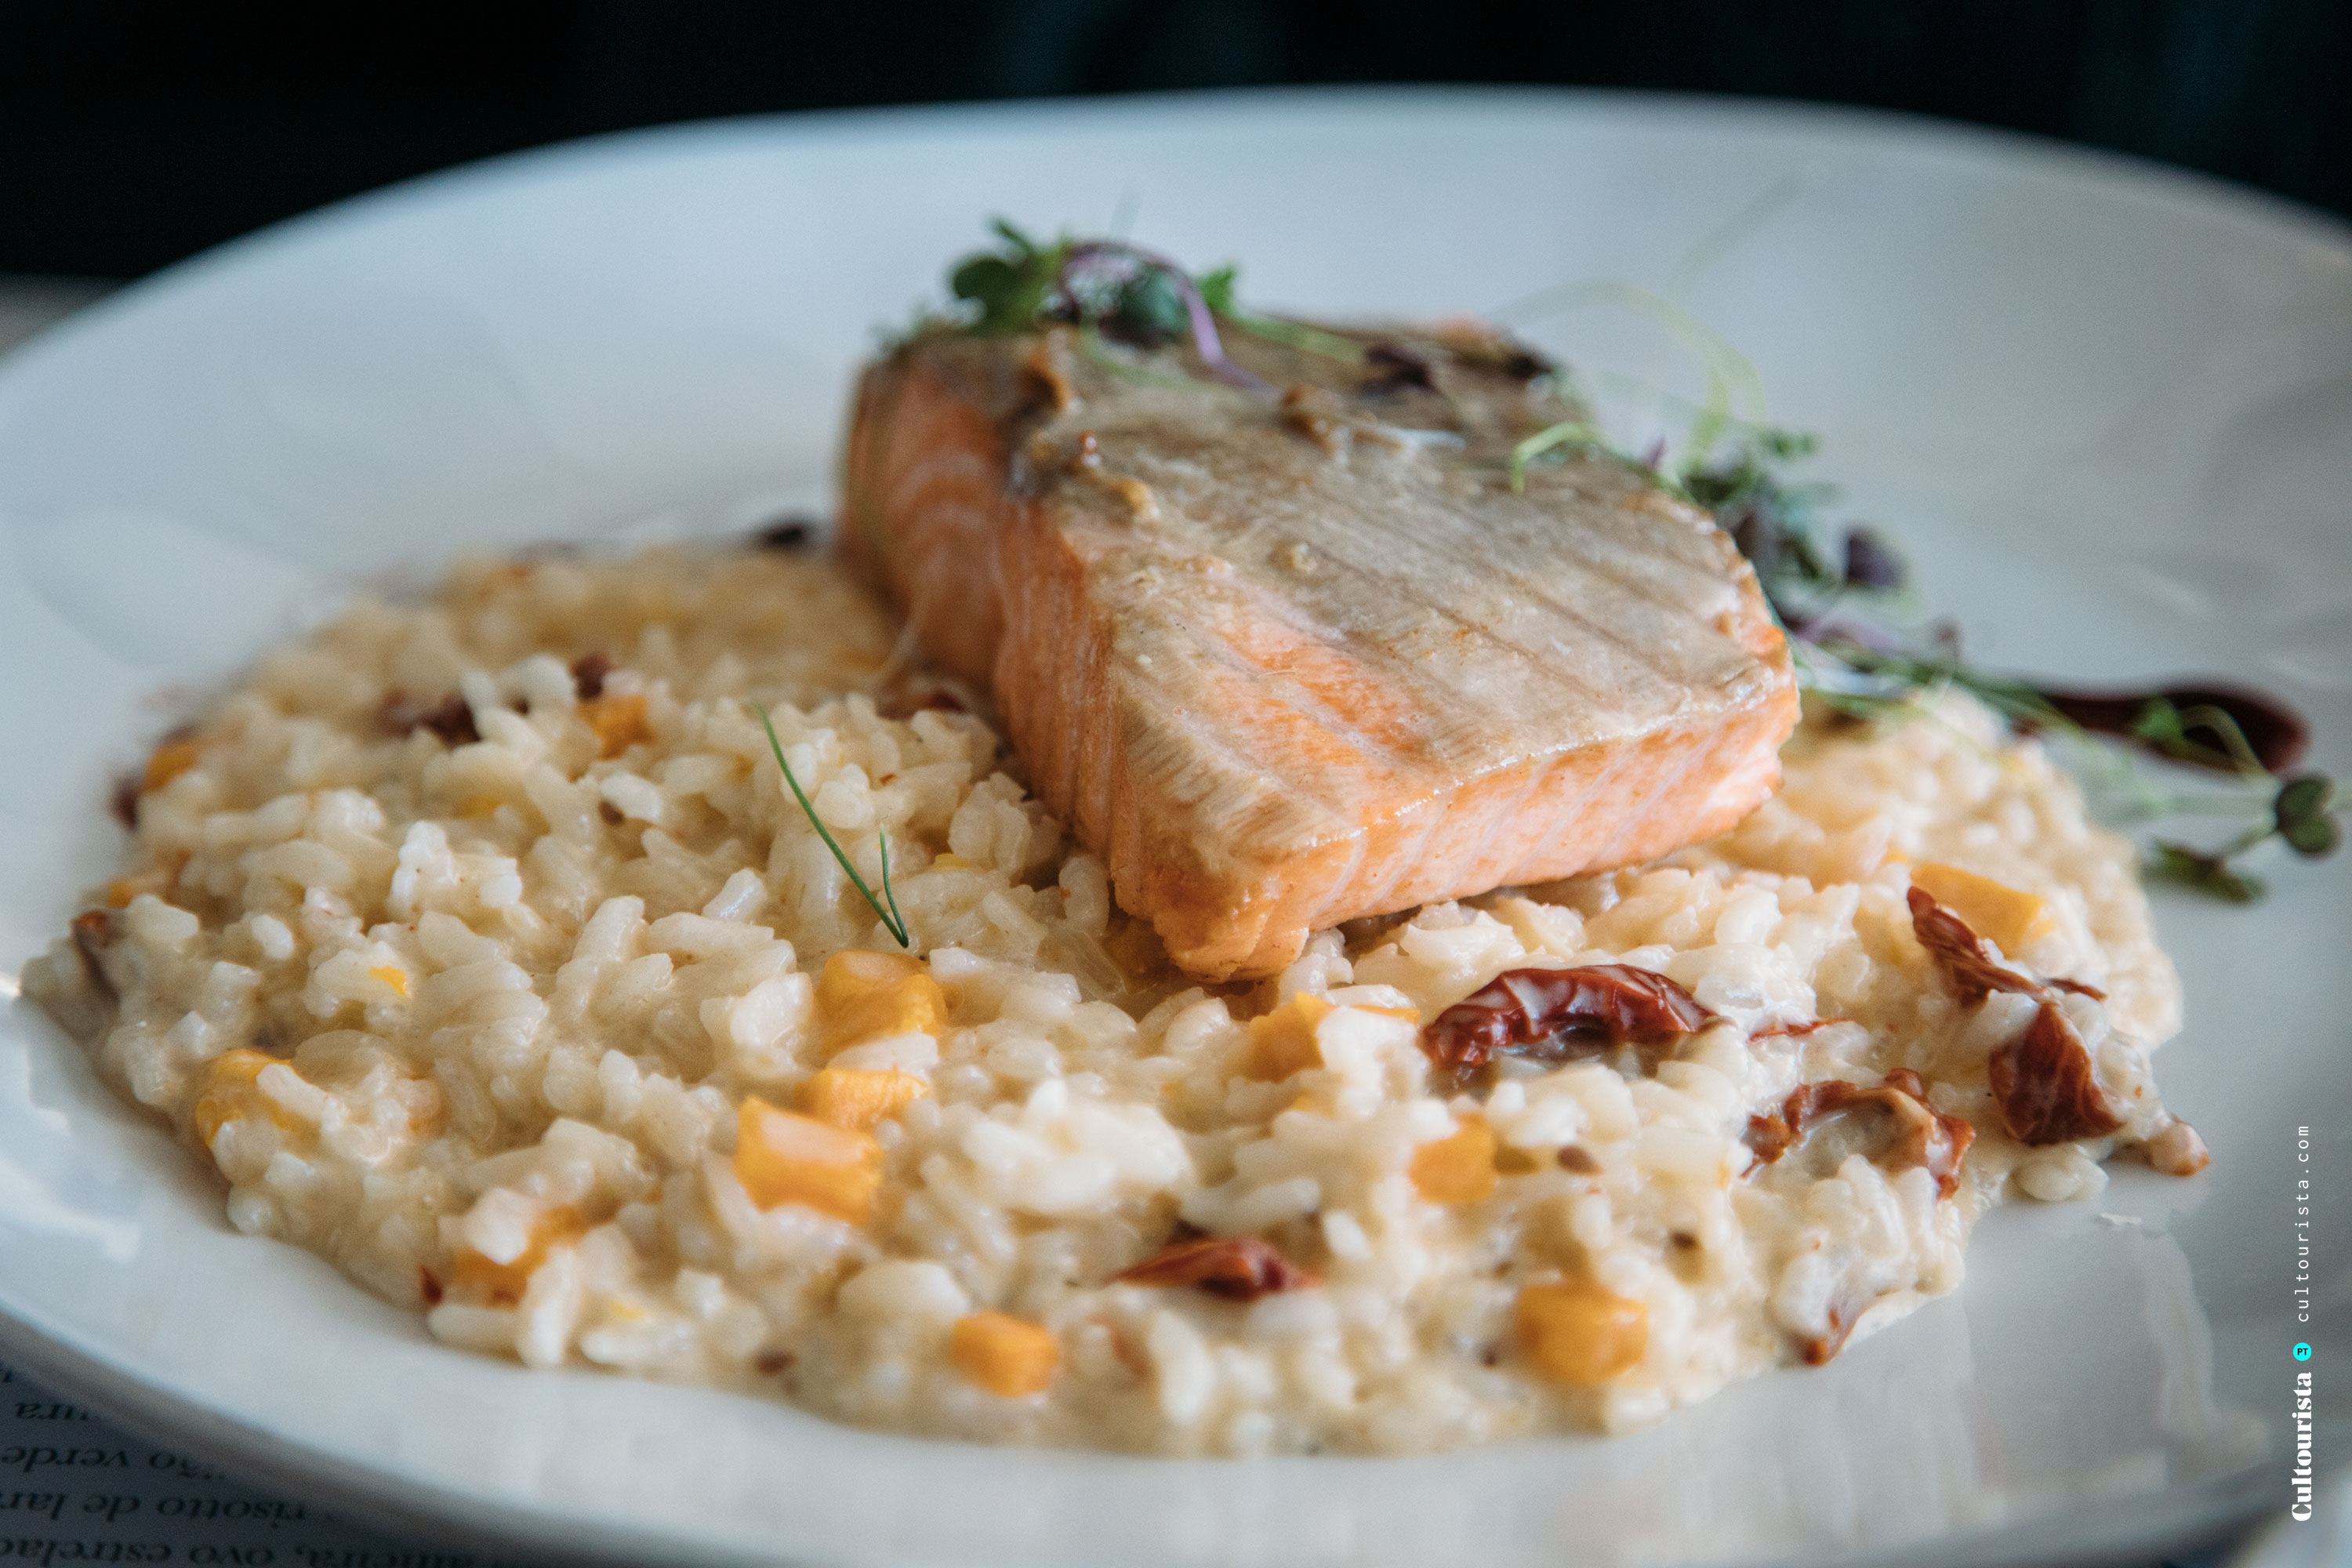 Salmon with risotto at the restaurant Darwin's Cafe in Belém Lisbon